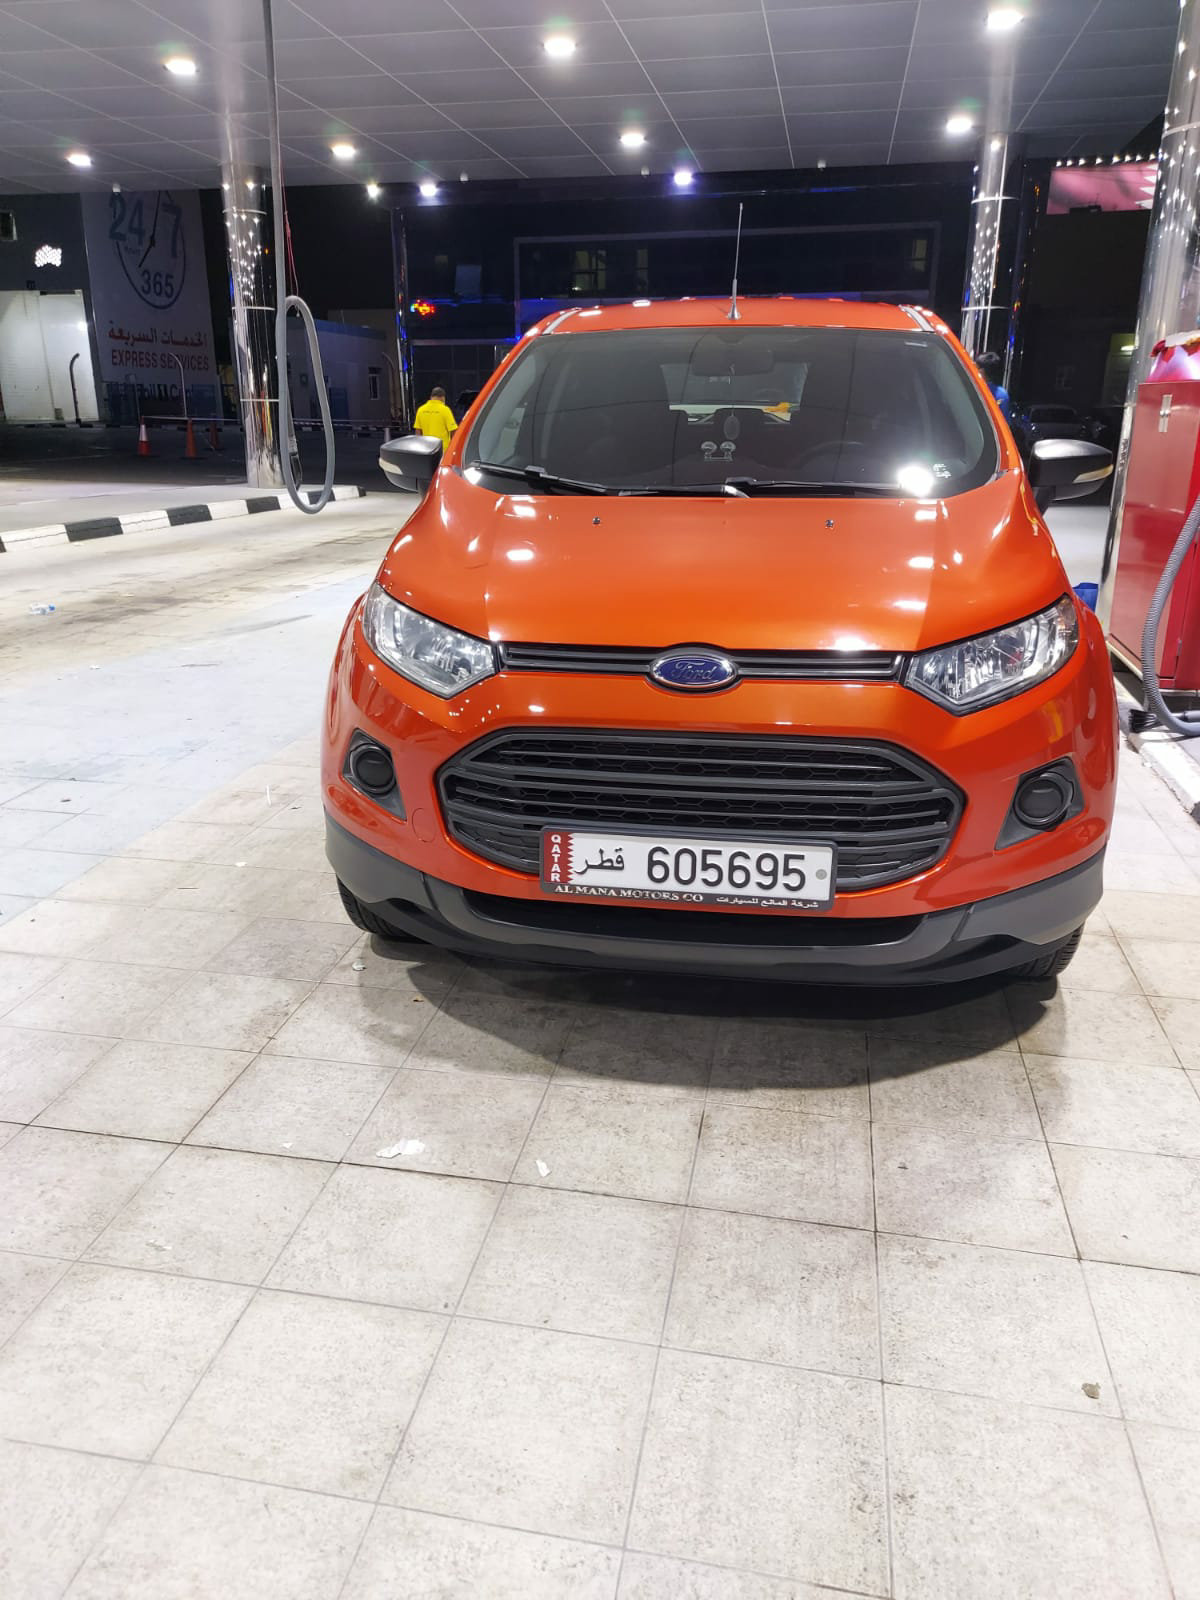 Ford ecosports 2017 model purchased in 2019